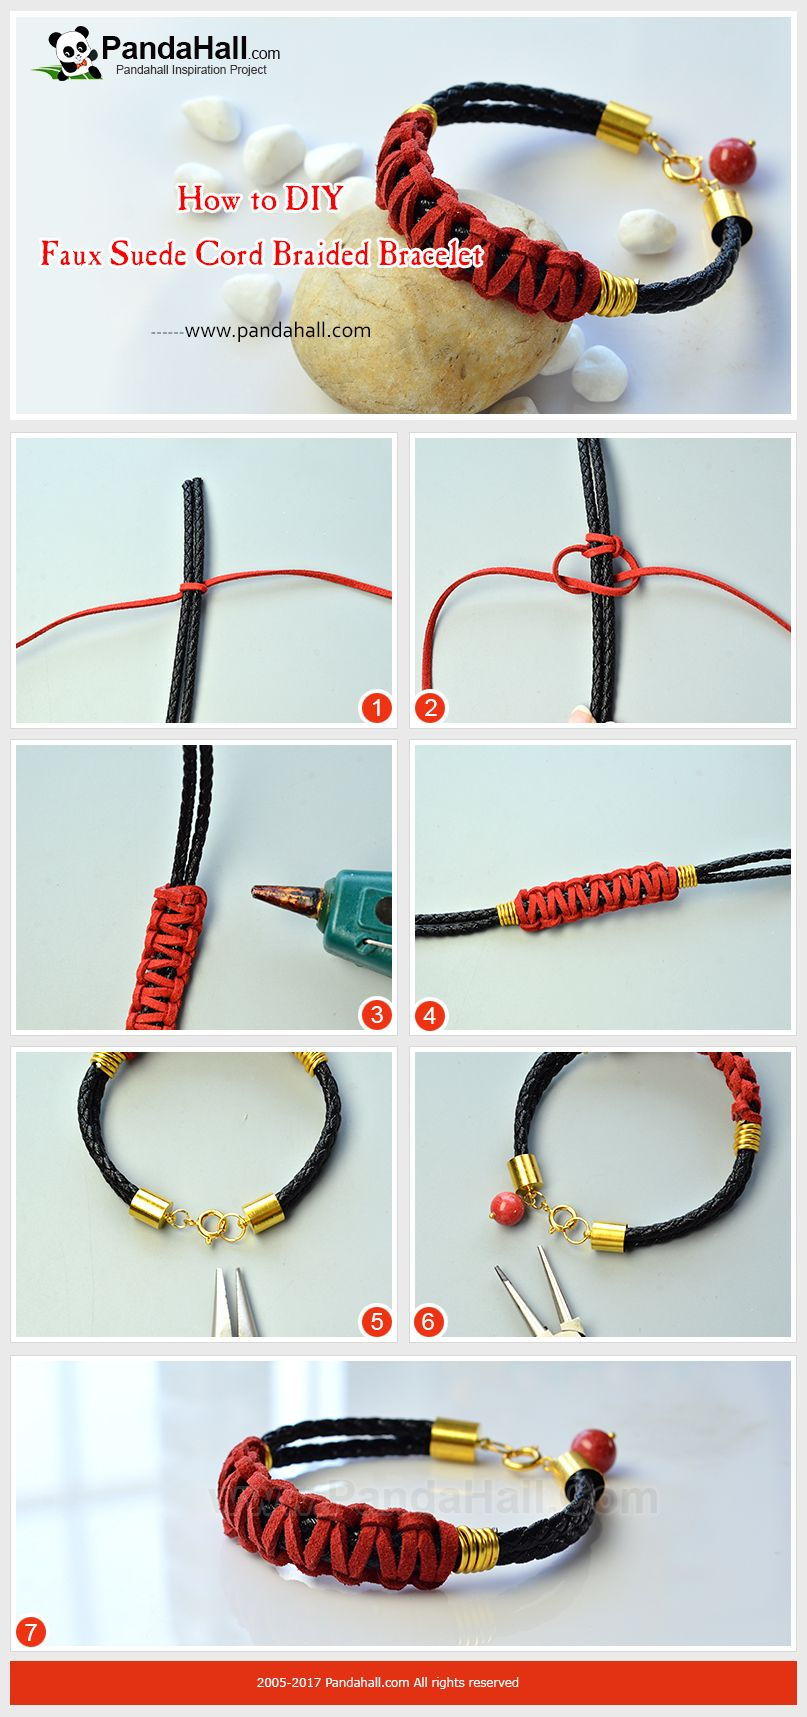 How To Diy Faux Suede Cord Braided Bracelet The Bracelet Is